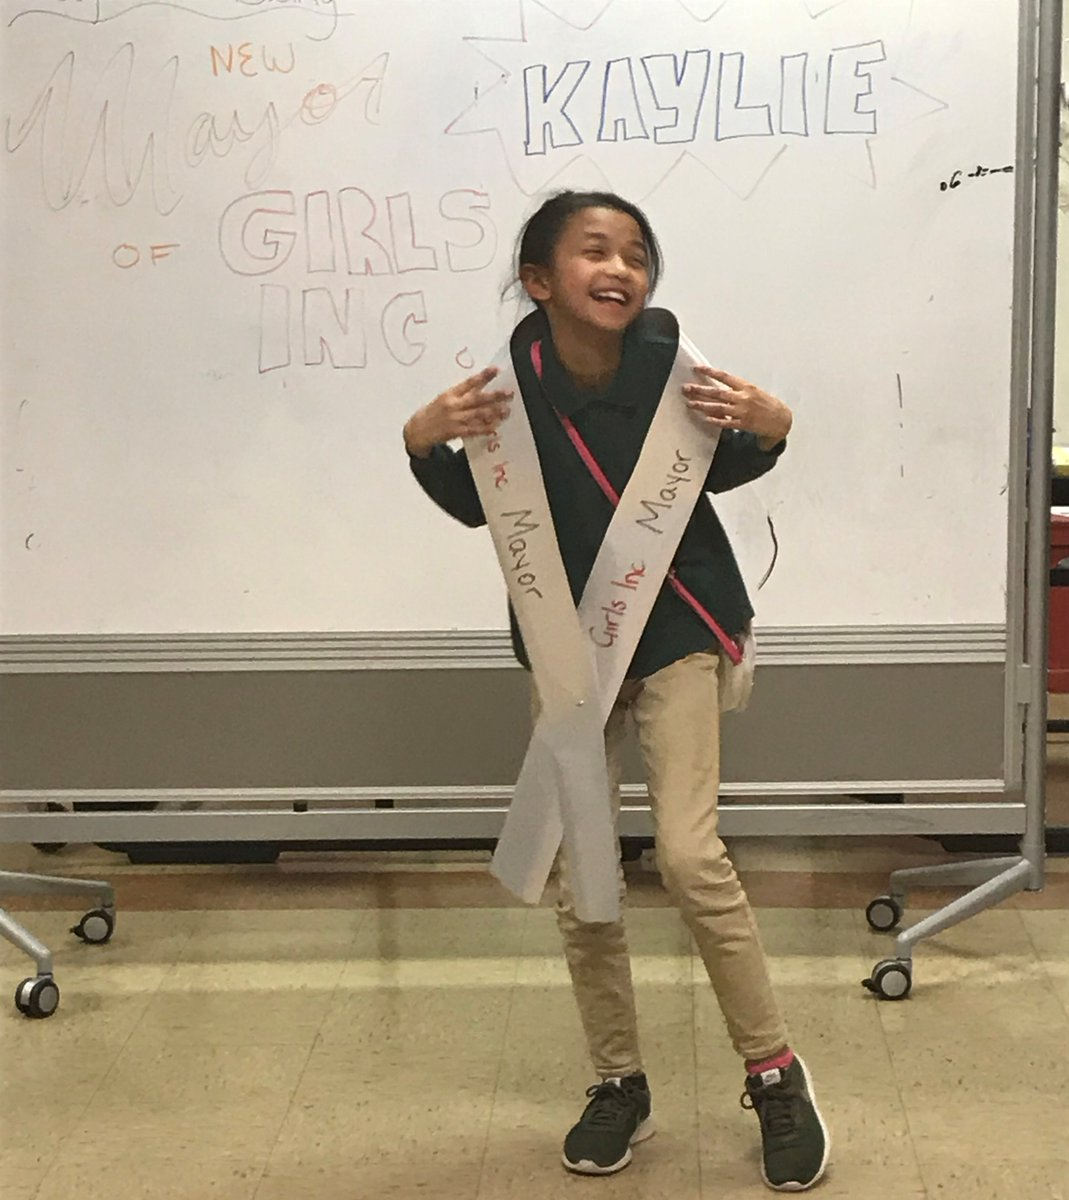 Wed like to present... @GirlsIncHolyoke Mayor Kaylie! She earned the votes of her fellow #GirlsInc peers in our #SheVotes curriculum. They learned not only about current events & candidates, but also public speaking skills. Congrats to all! #StrongSmartBold